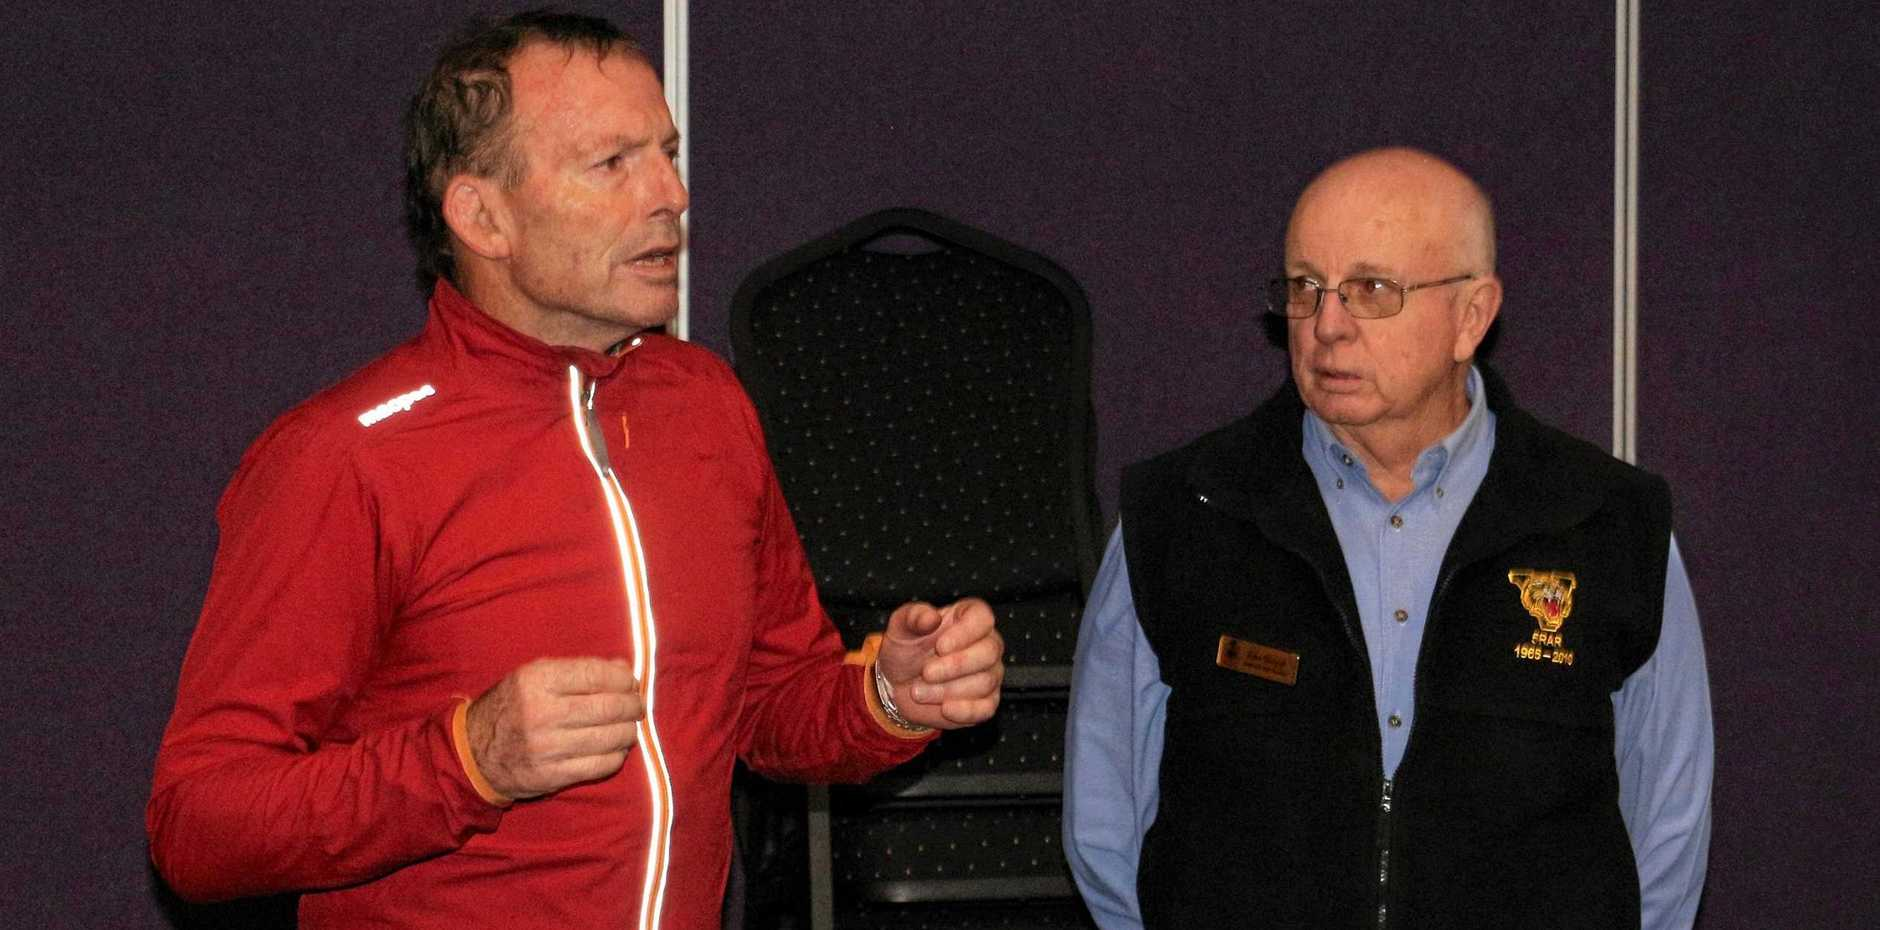 VISIT: Former prime minister Tony Abbott discusses charity work with sub-branch president John Skinner.